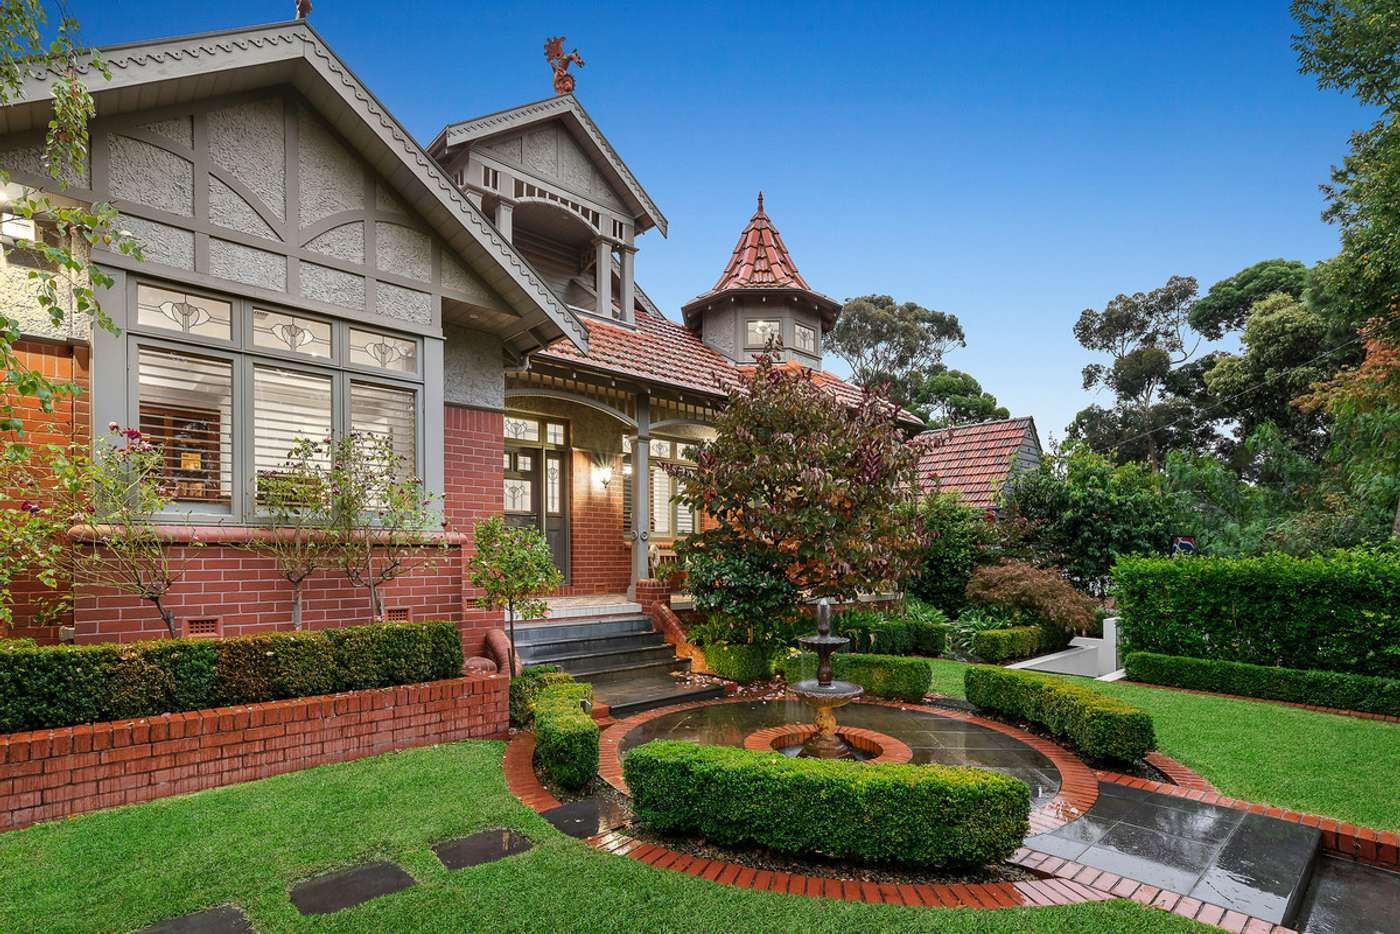 Main view of Homely house listing, 48 Zetland Road, Mont Albert VIC 3127